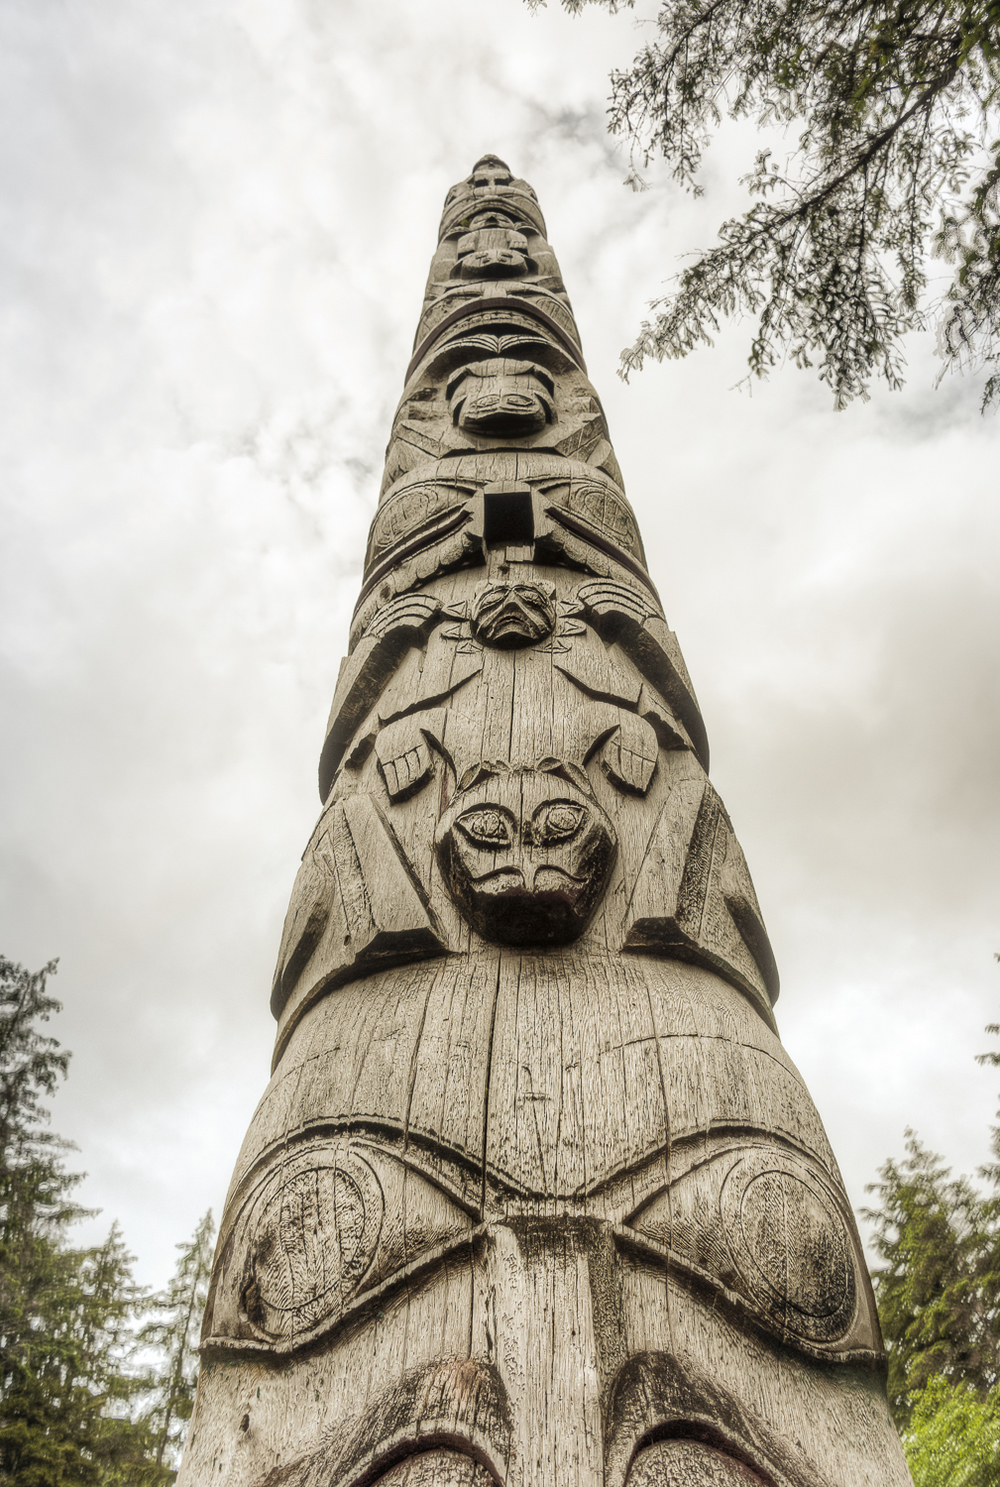 A very traditional styled totem